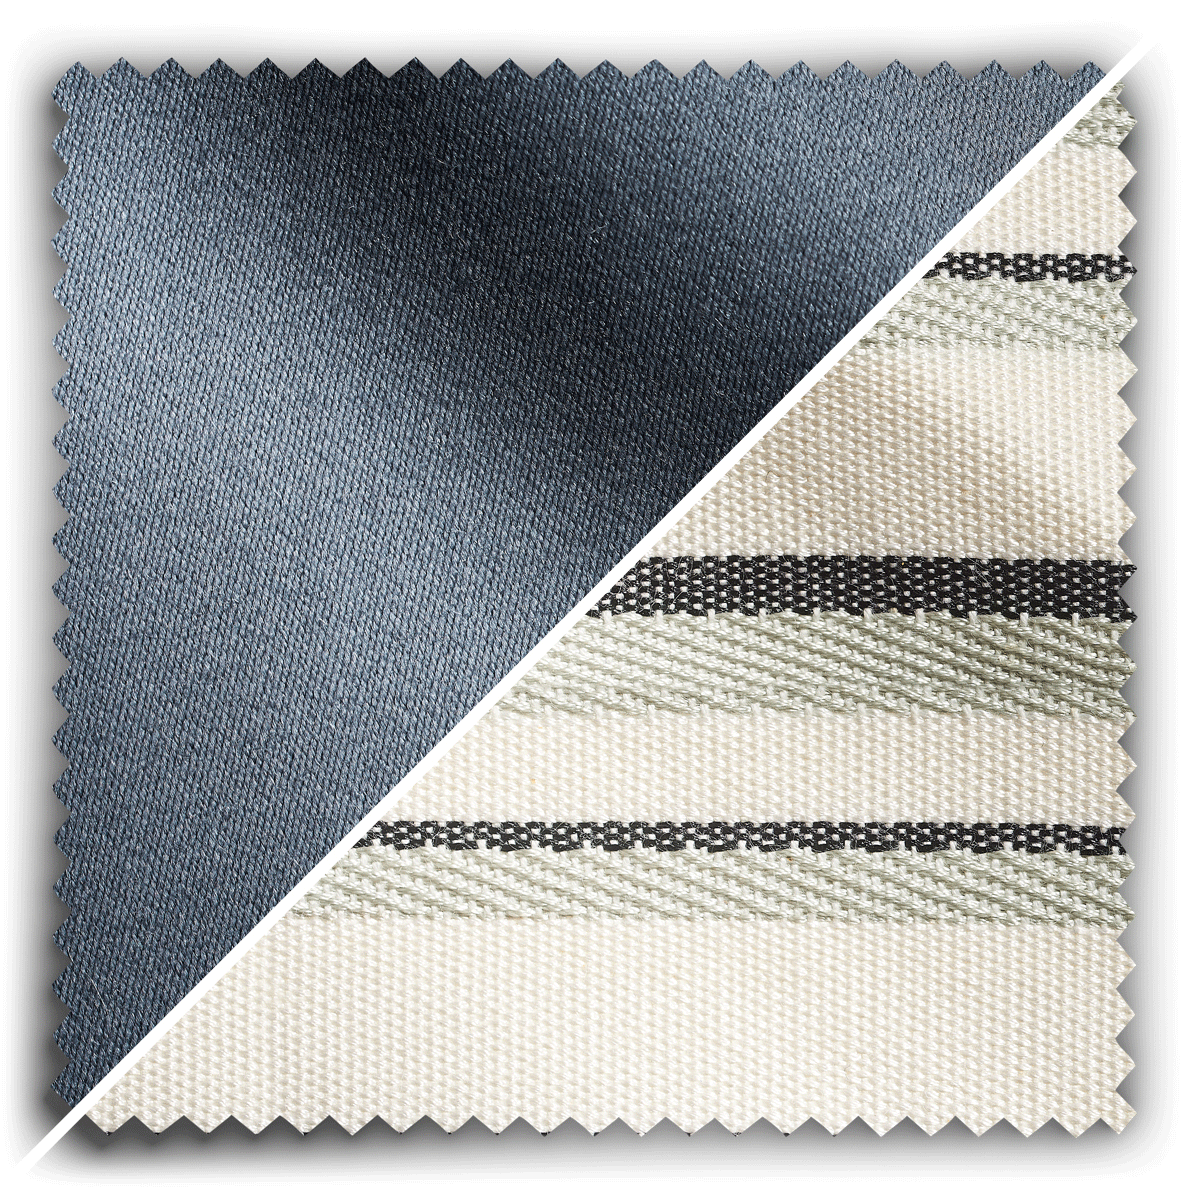 Image of Studio Stripes French Blue Relaxed Wool fabric